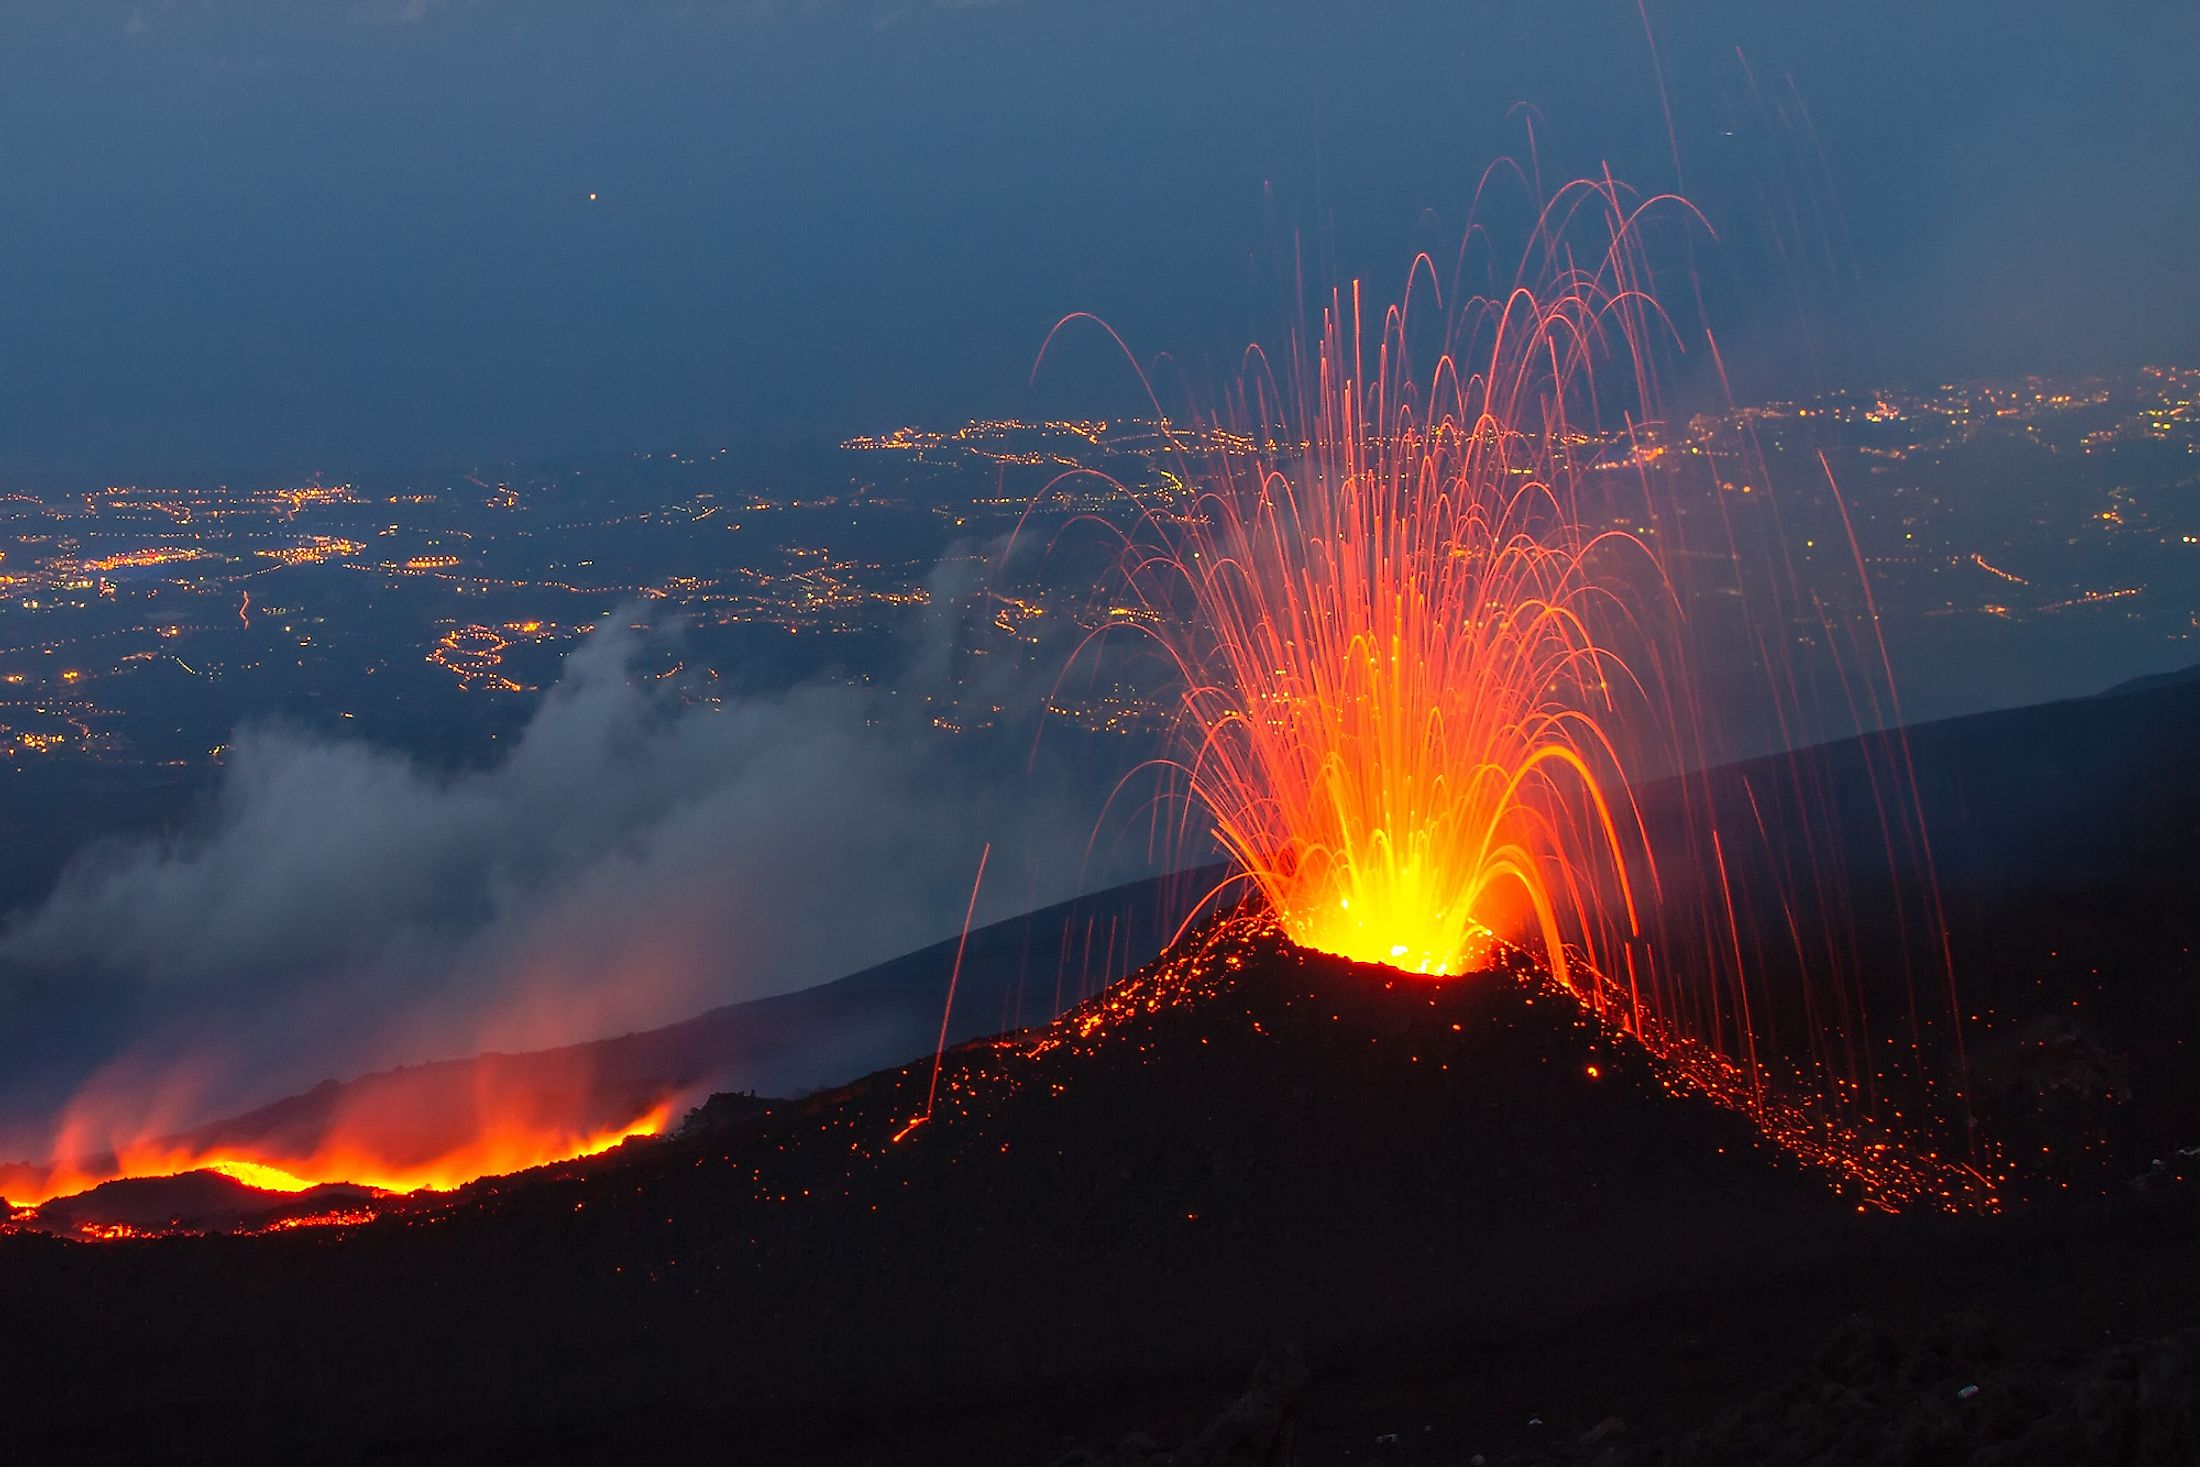 Mount Etna, Sicily, Italy, erupts in July 2014. Image credit: Wead/Shutterstock.com